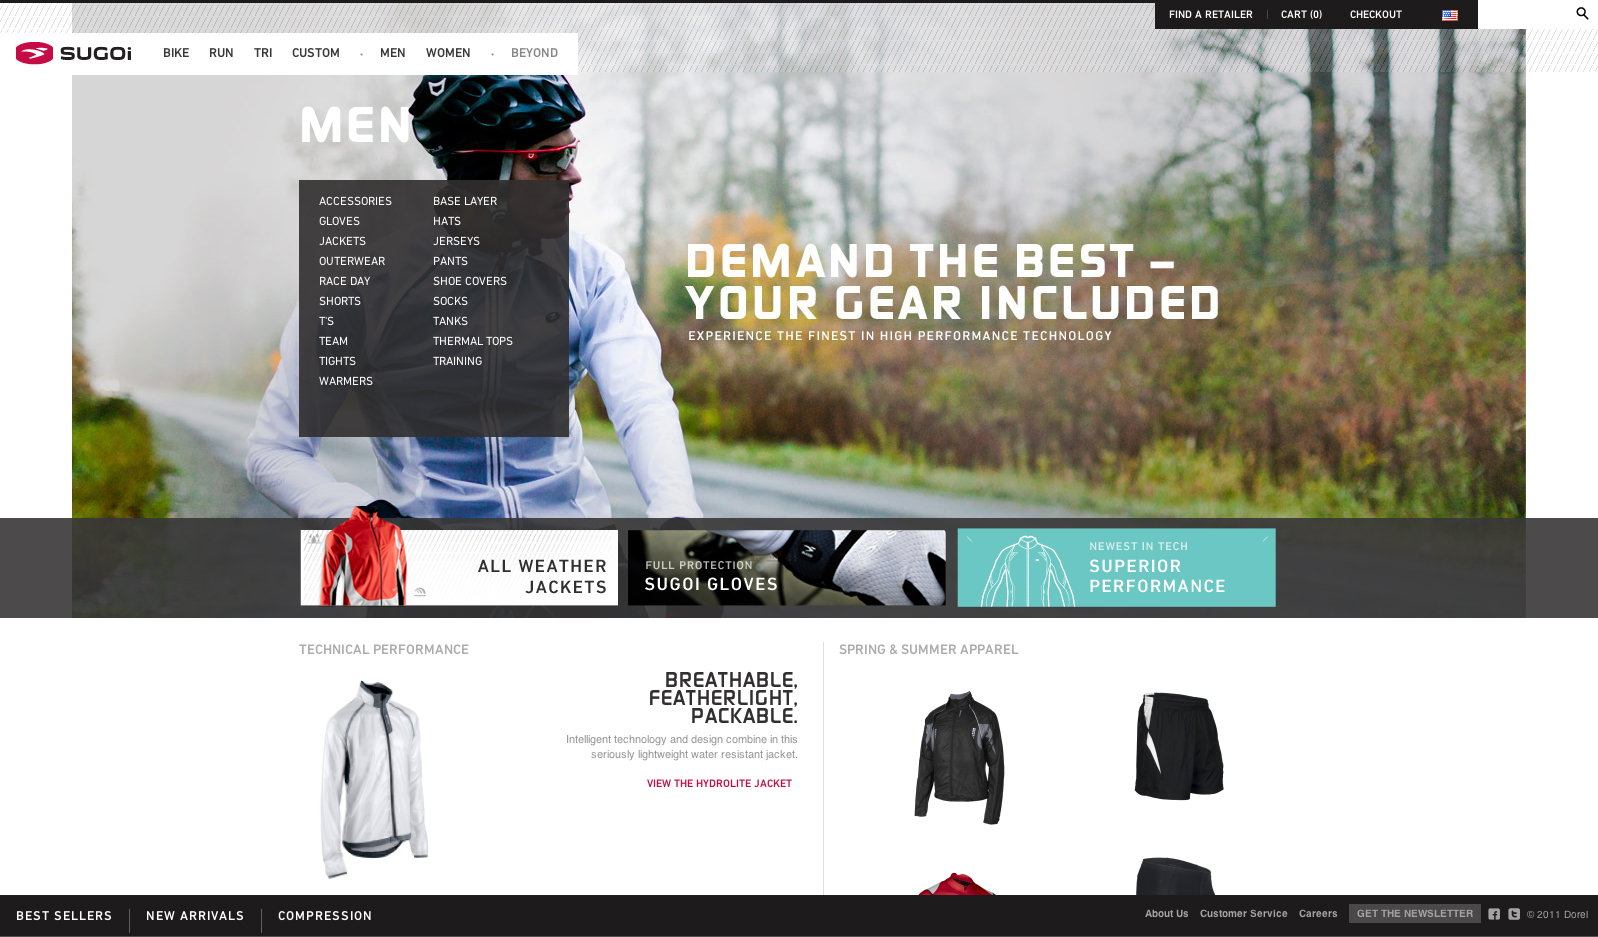 Sugoi - Online Retail Experience